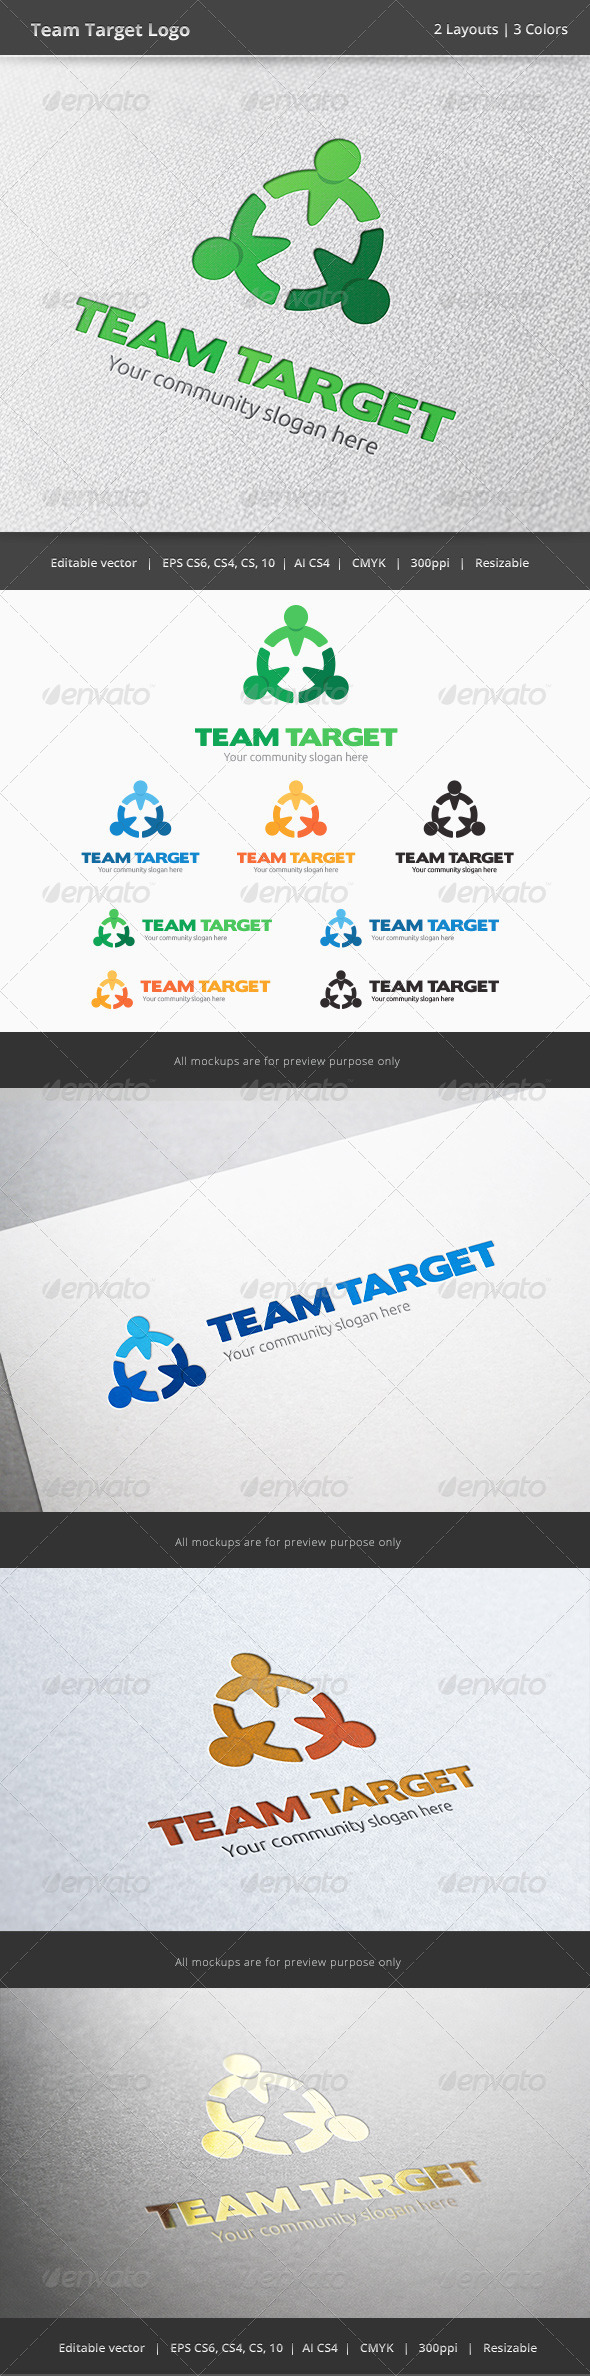 GraphicRiver Team Taget People Logo 6066453